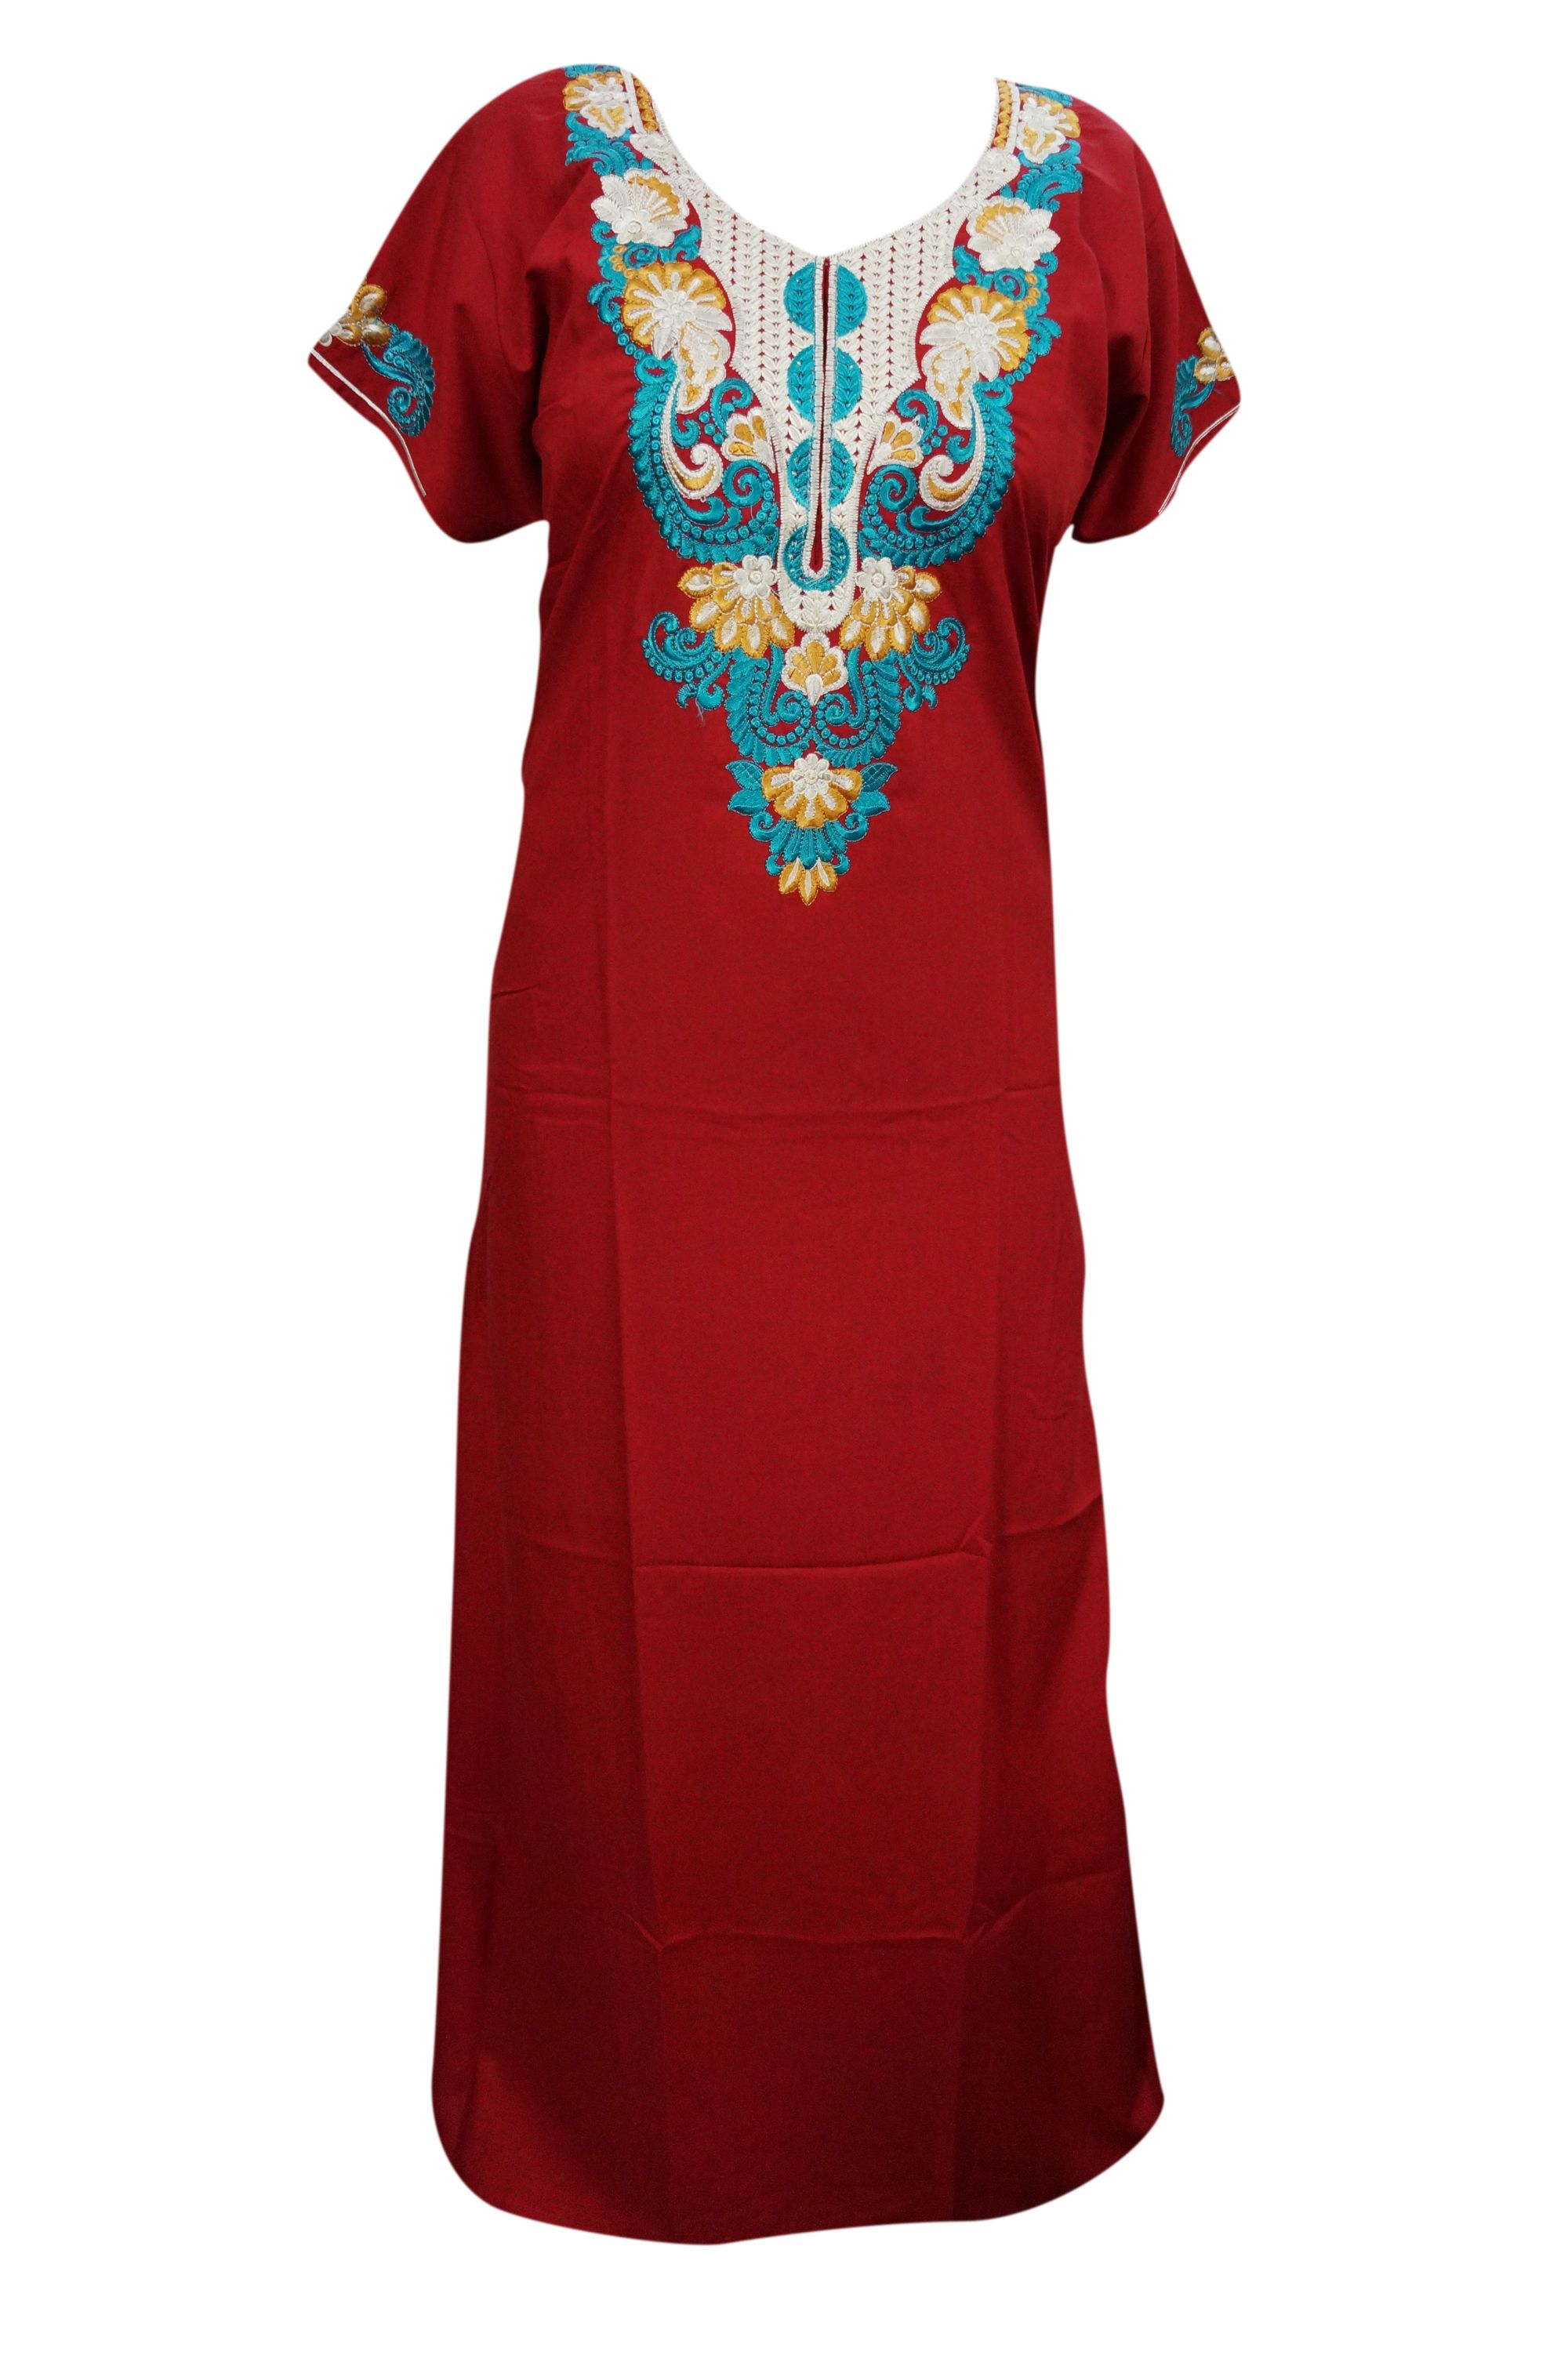 Mogul womens caftan nightdress red embroidered kaftan maxi lounger